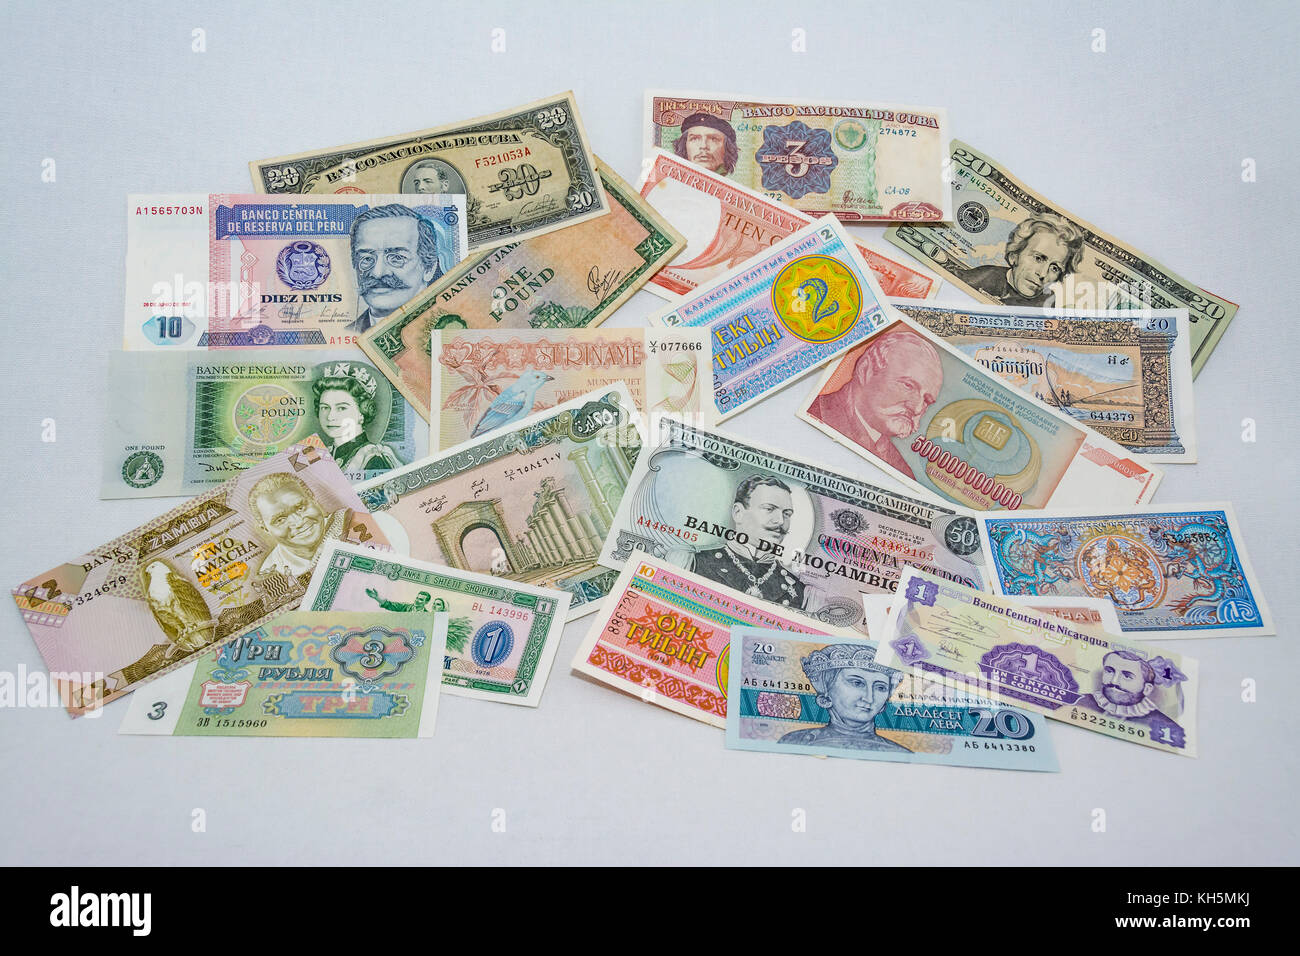 Collage of various old and new international currency banknotes - Stock Image